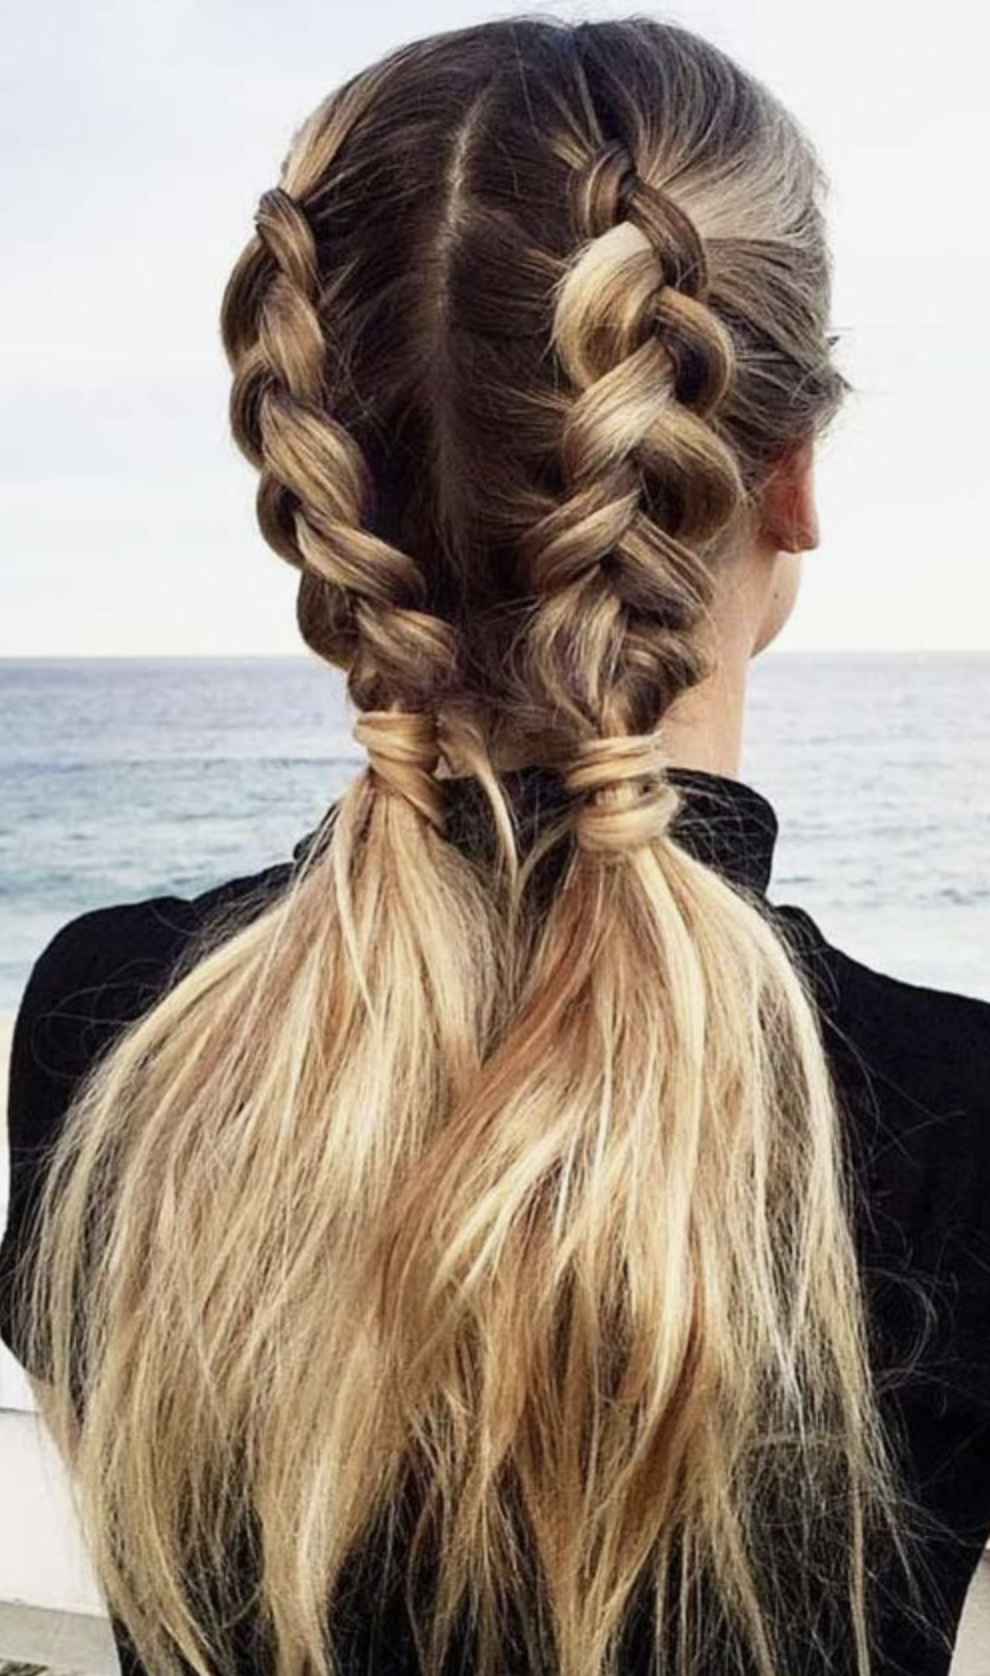 Pin by nikole paige on live fast die pretty pinterest hair